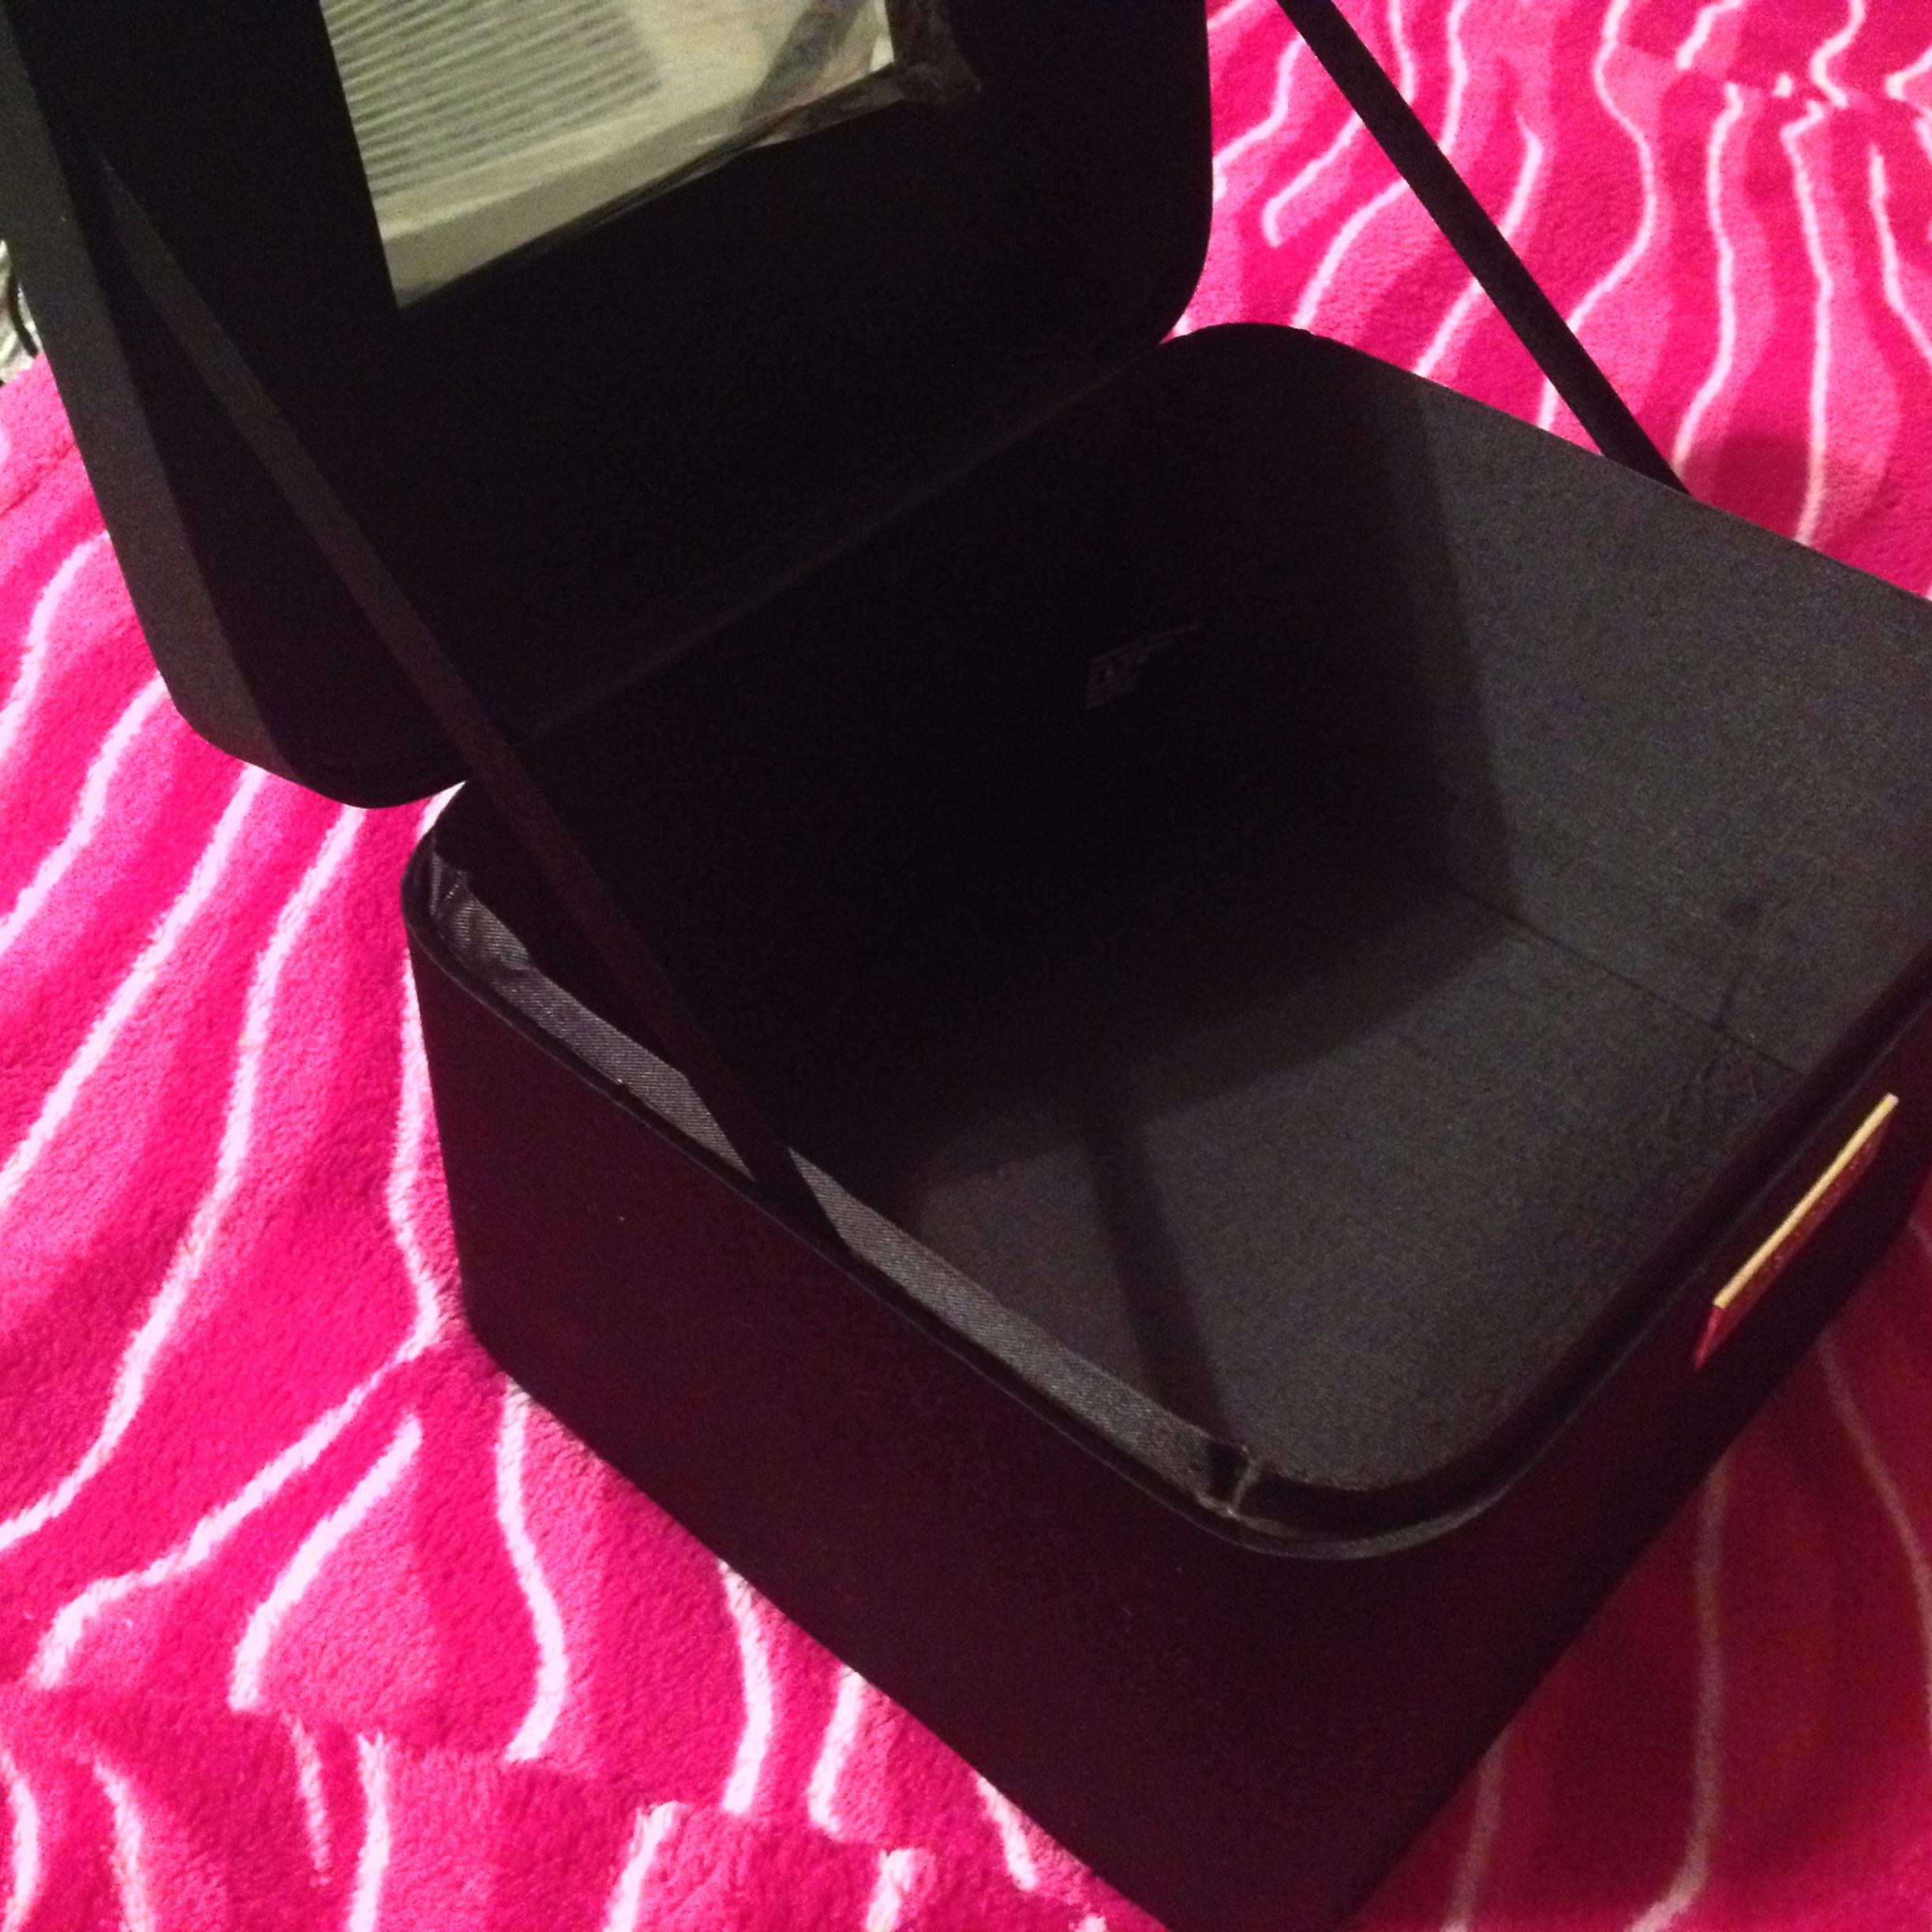 Marc Jacobs BRAND NEW without tags LARGE Black Satin Jewelry Box